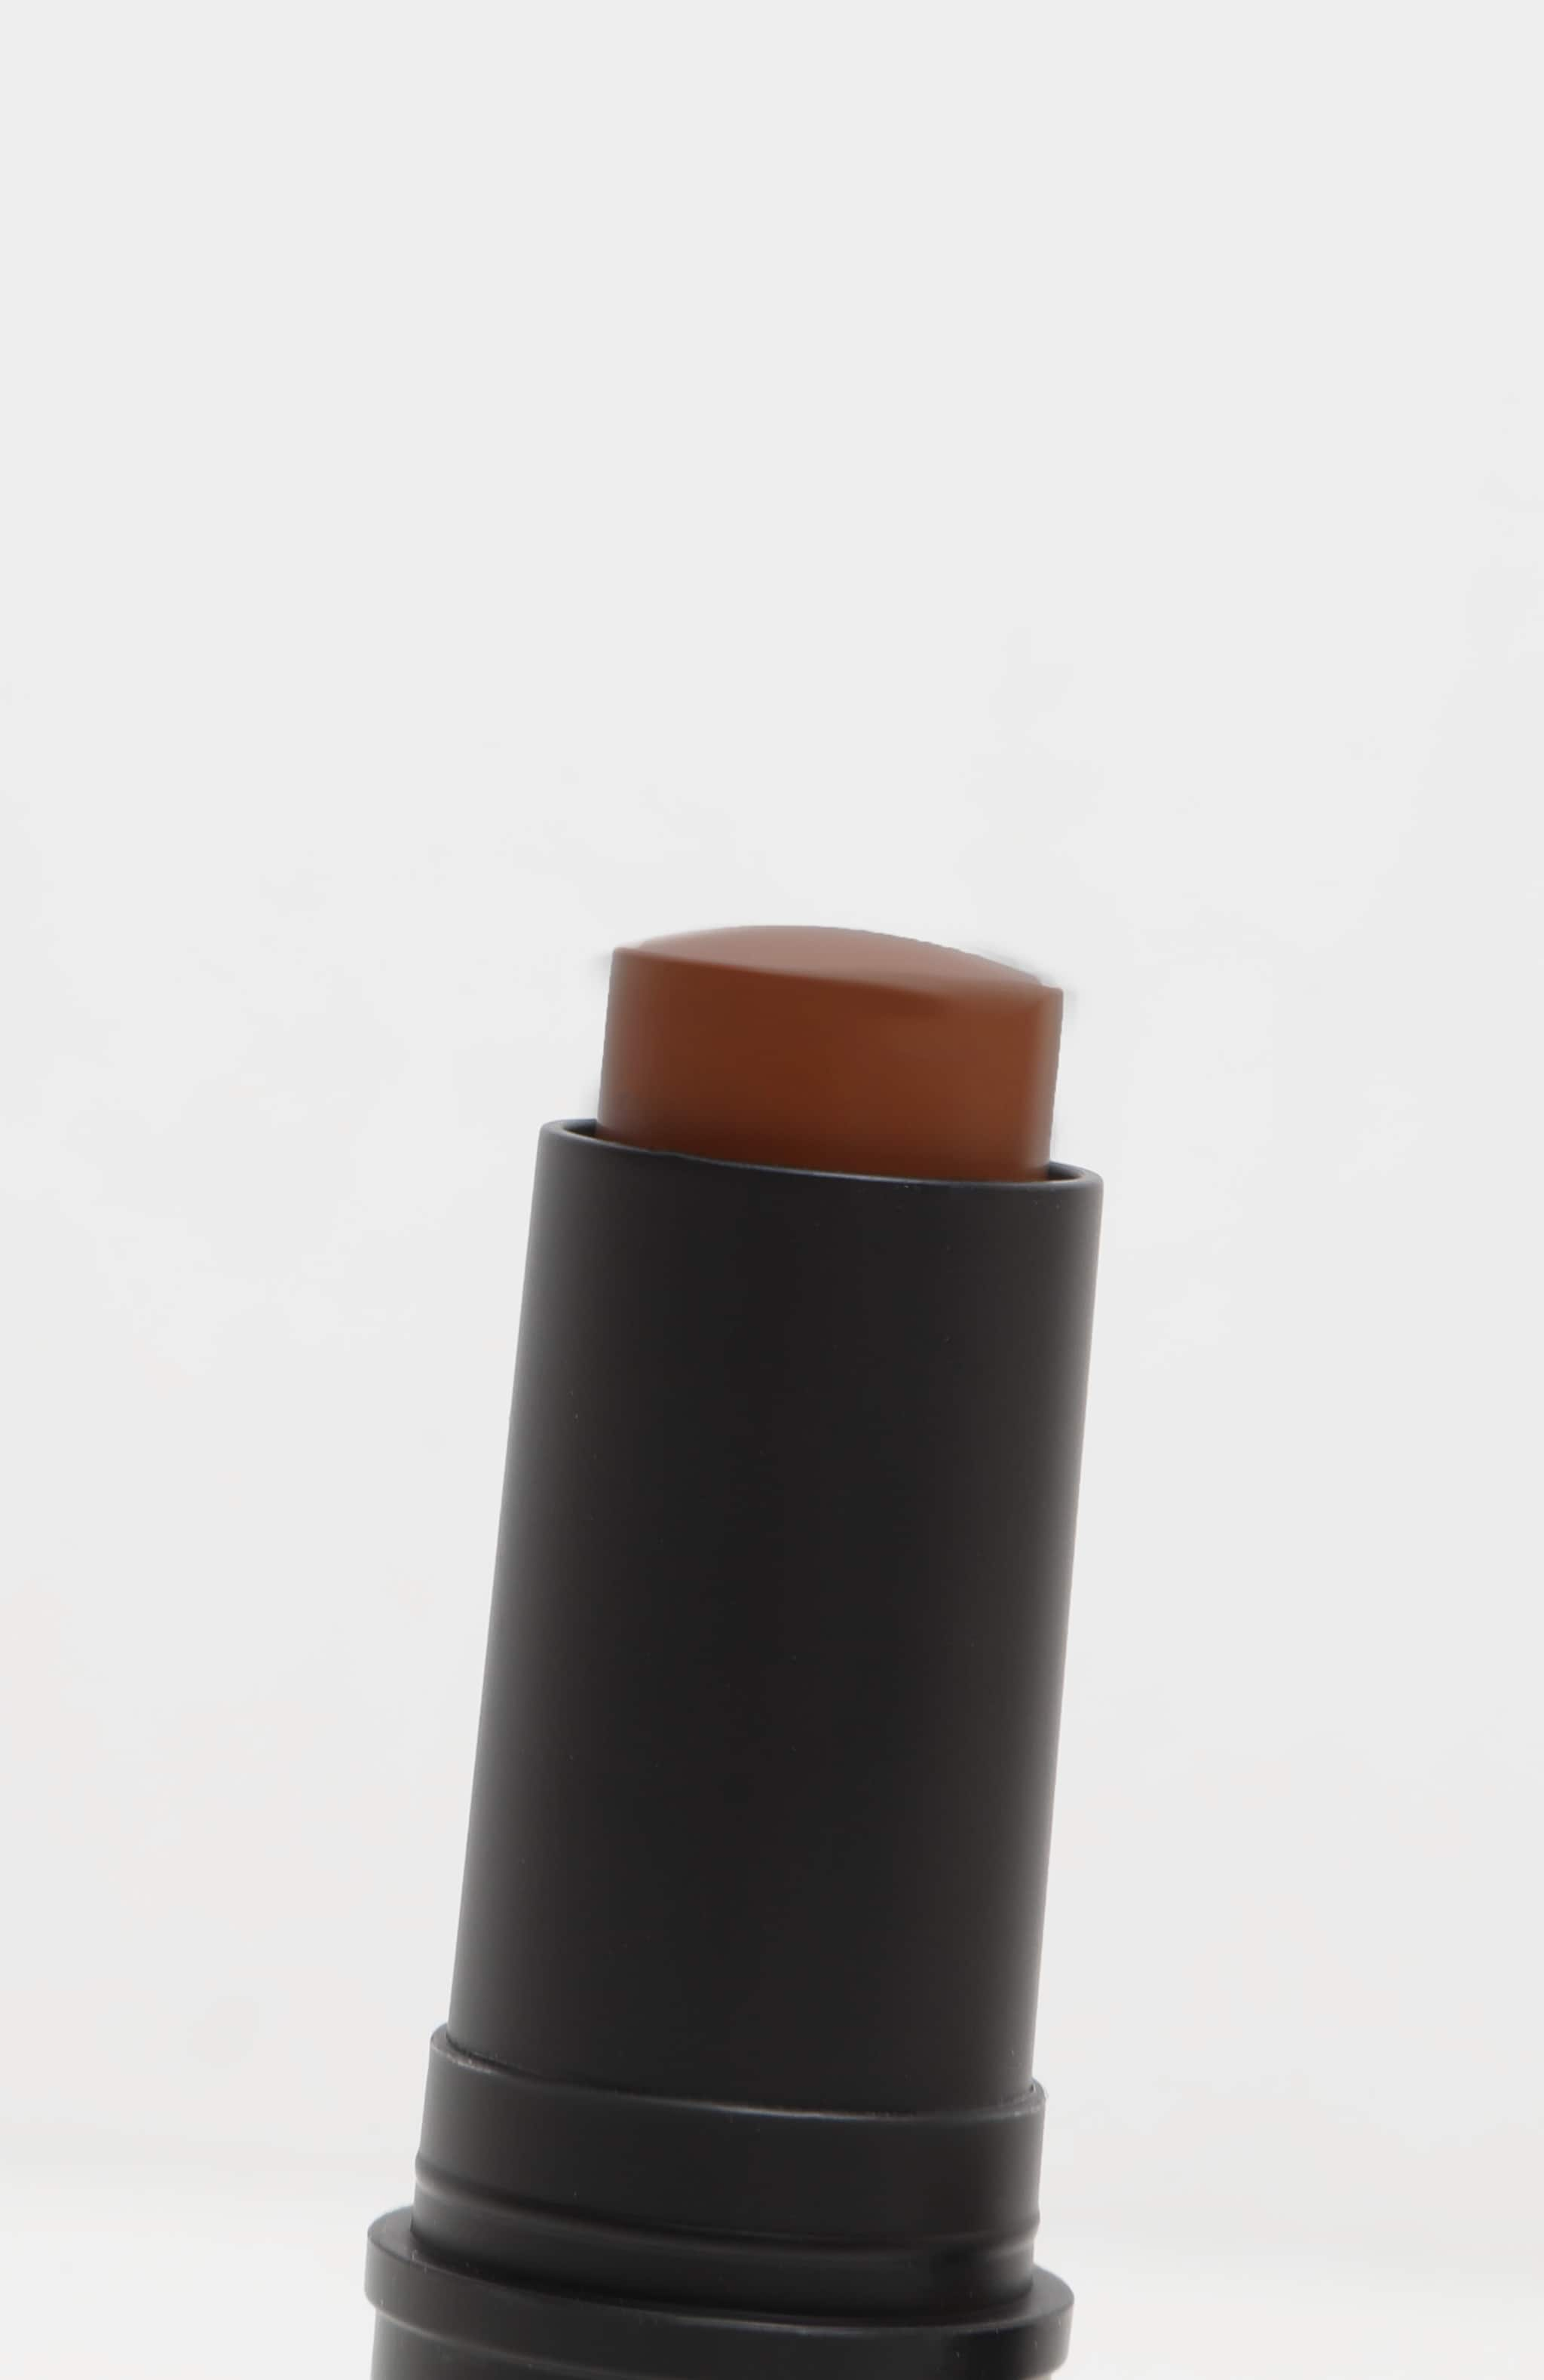 Morphe Dimension Effect Contour Stick #Effect17 3